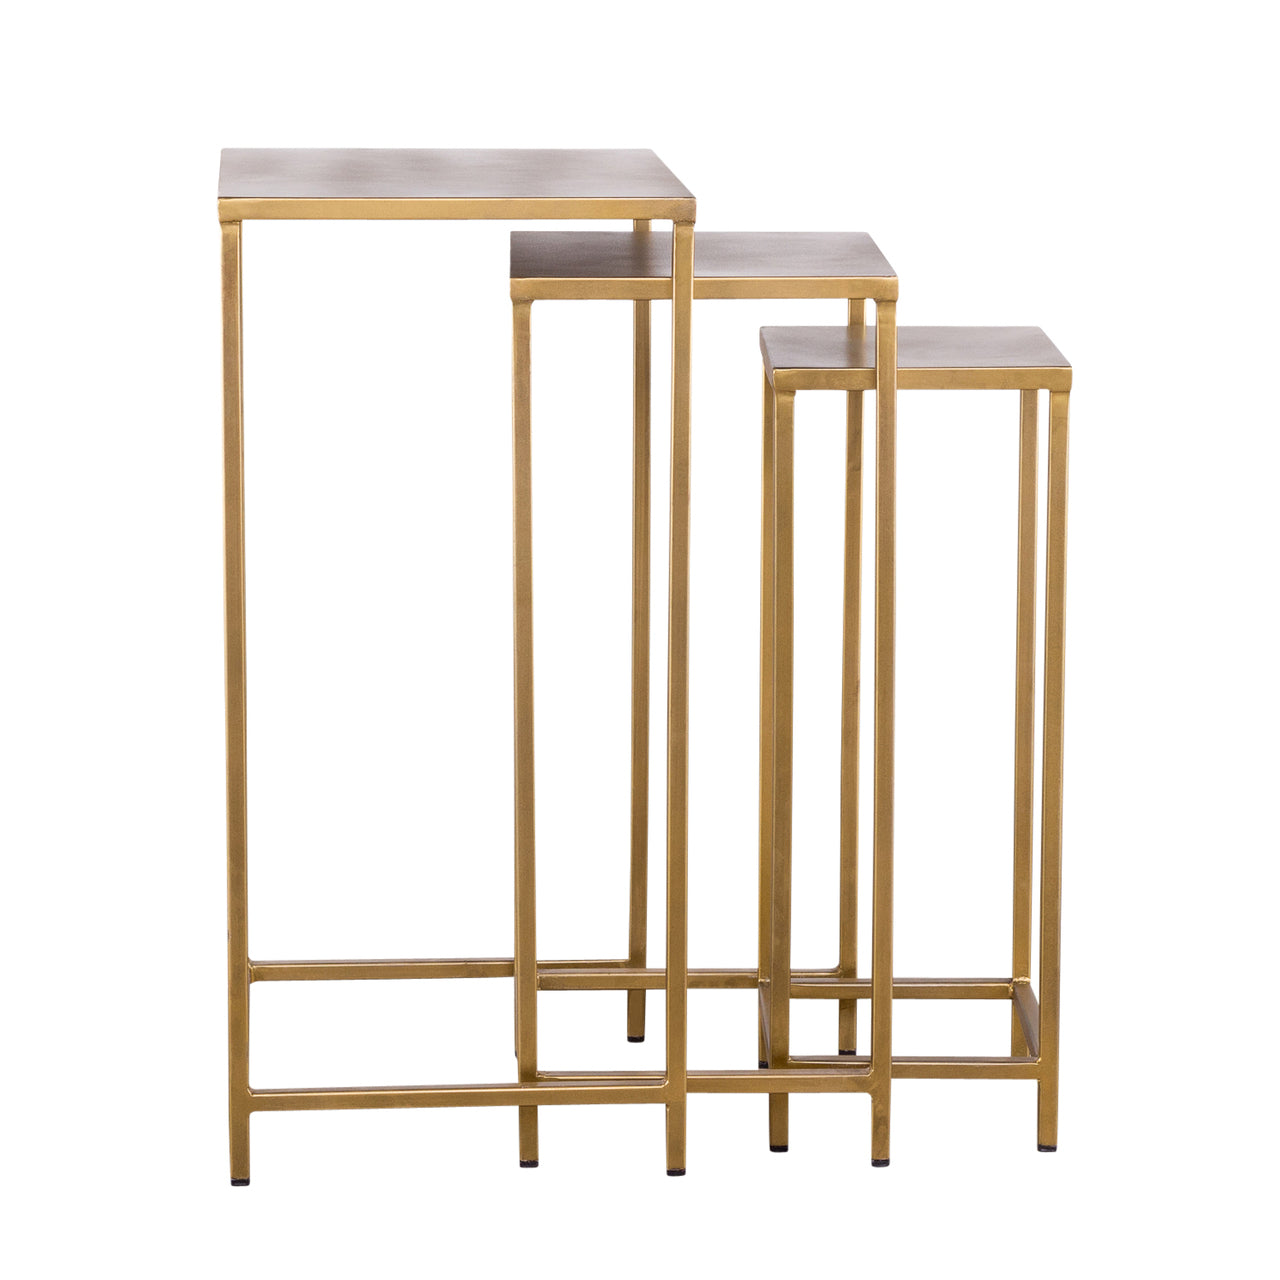 Pollock Tall Nesting Tables - Brass (Set of 3)